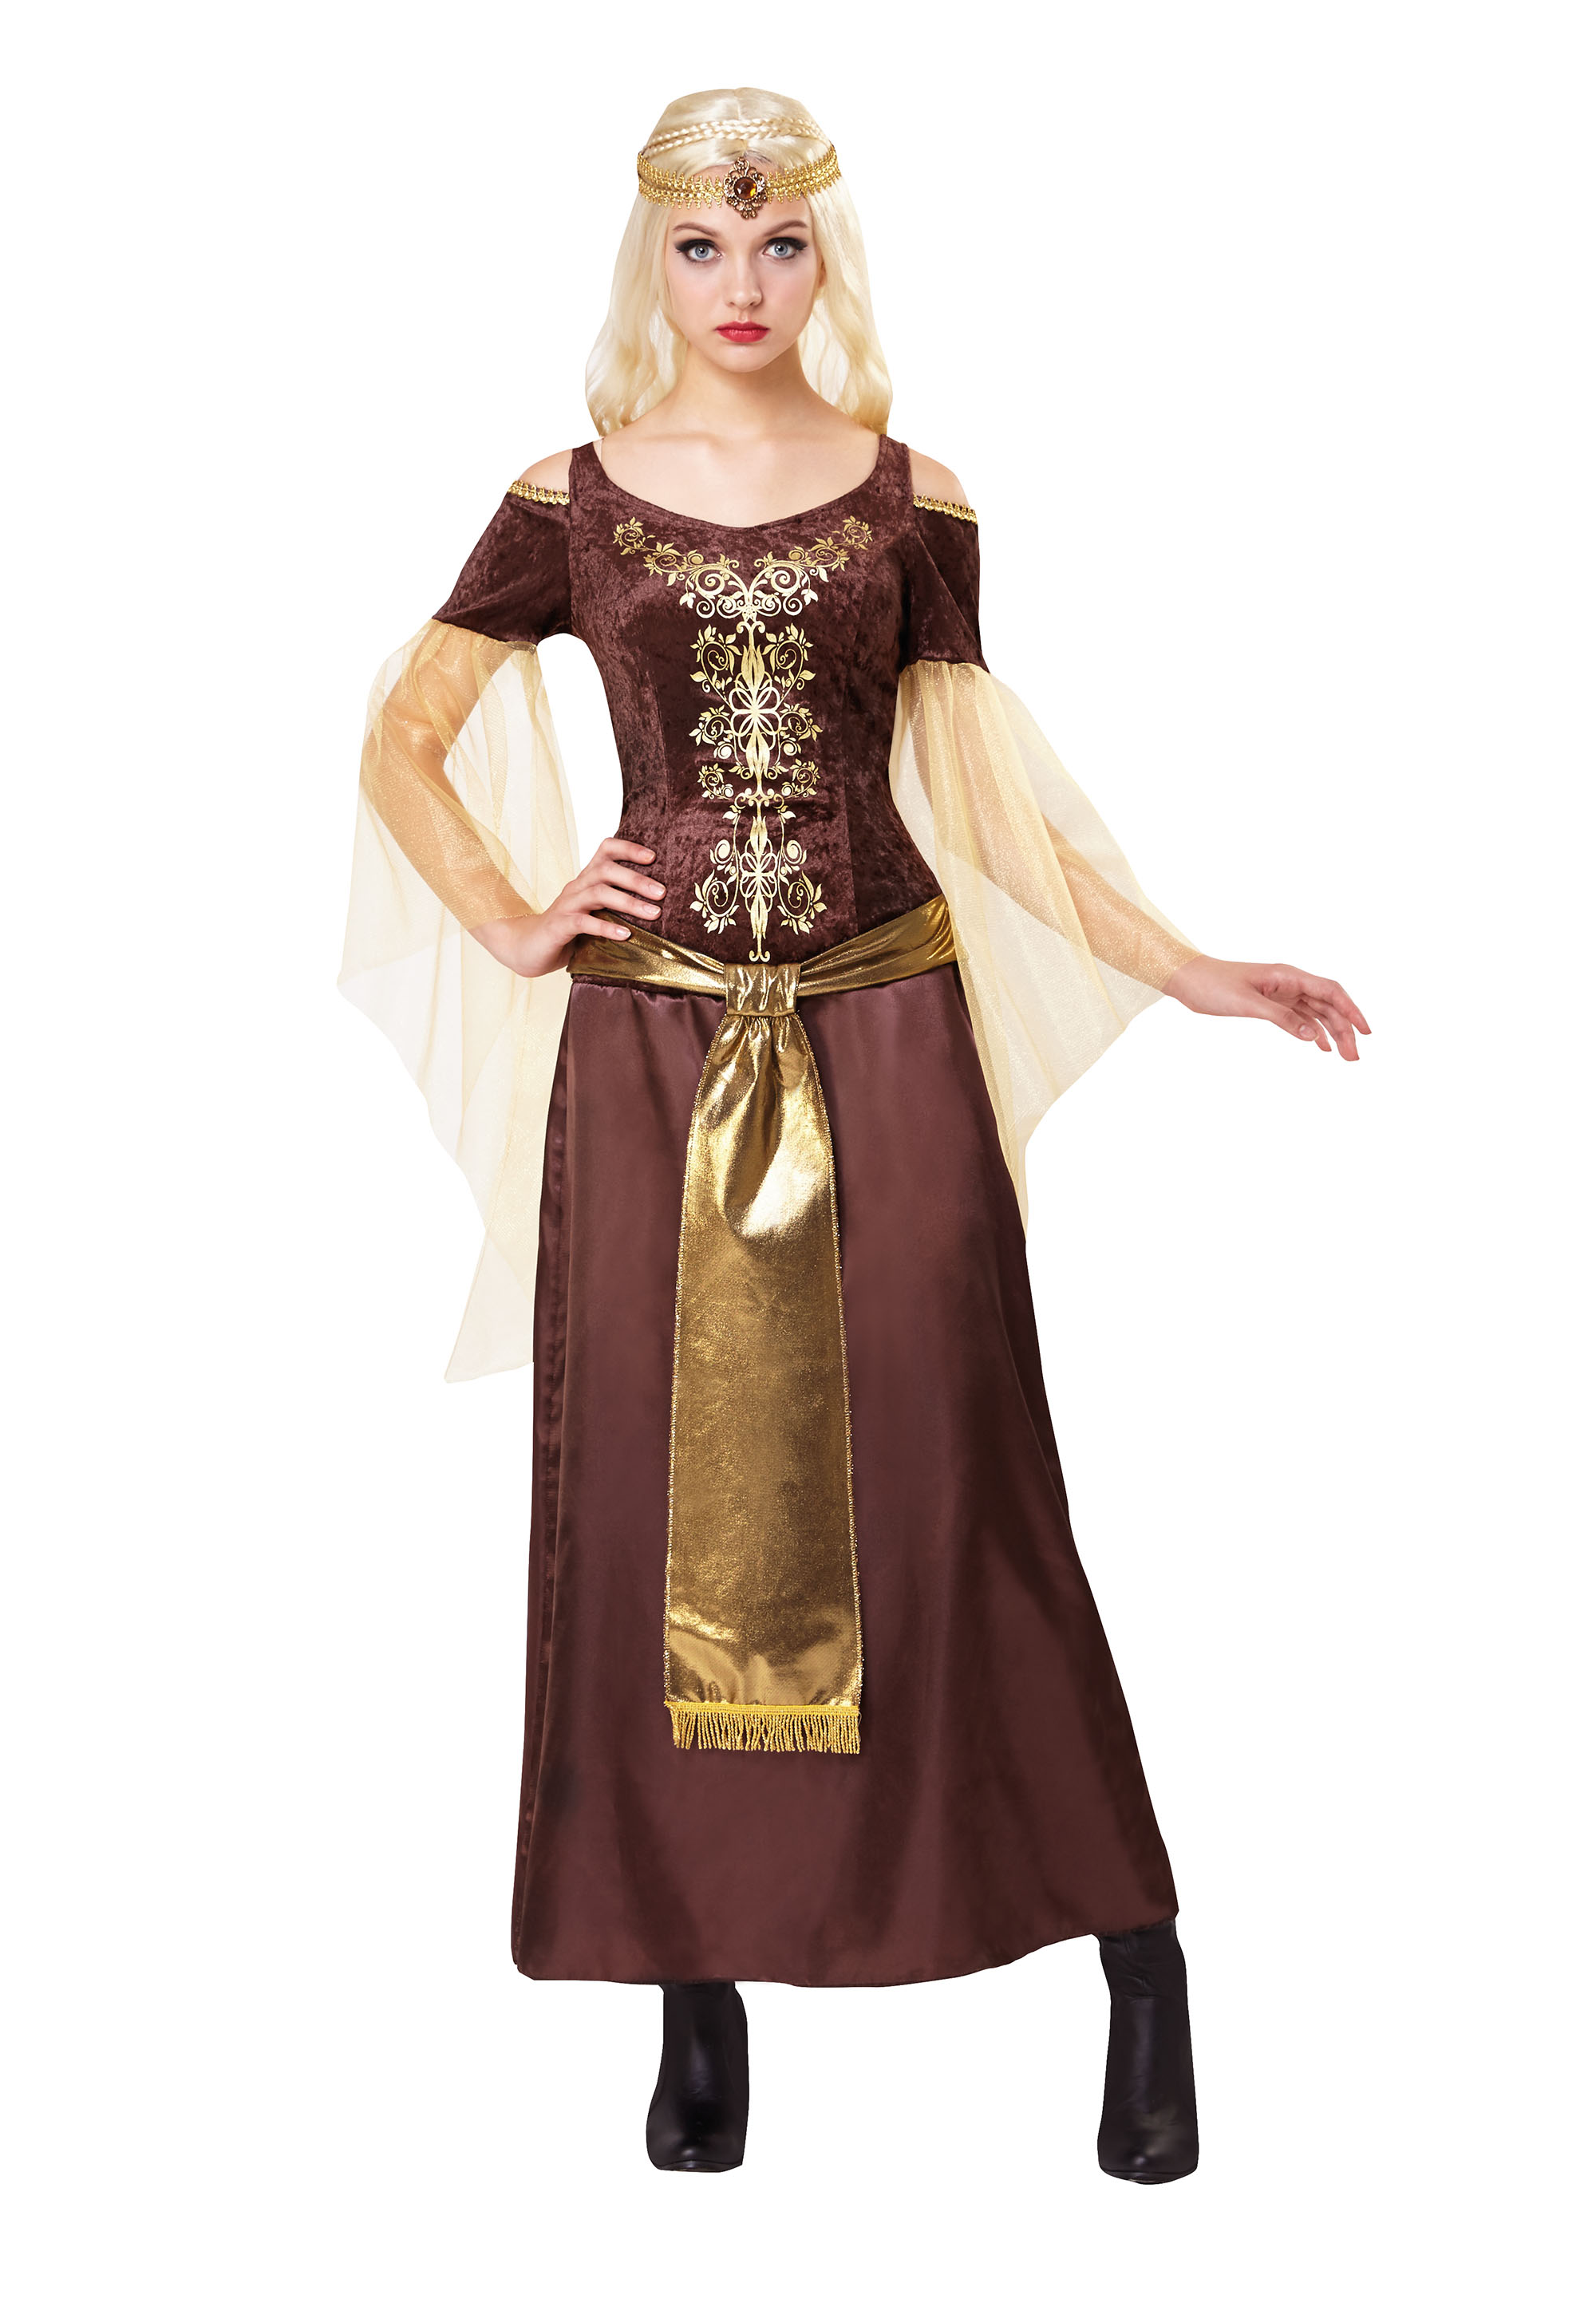 Medieval Lady Fancy Dress Costume Outfit Womens Adult UK 10-12